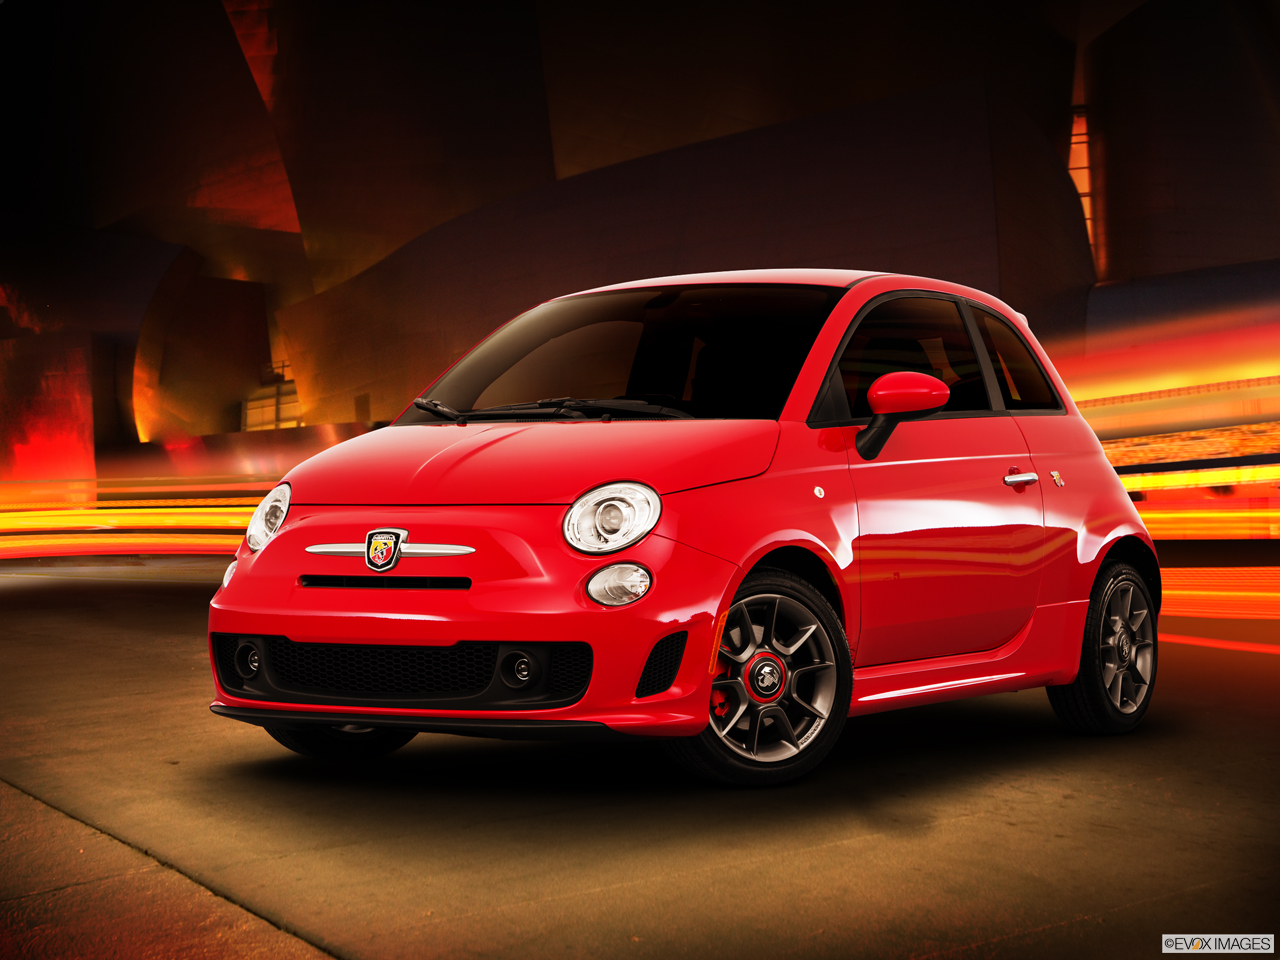 fiat 500 2016 abarth in uae: new car prices, specs, reviews